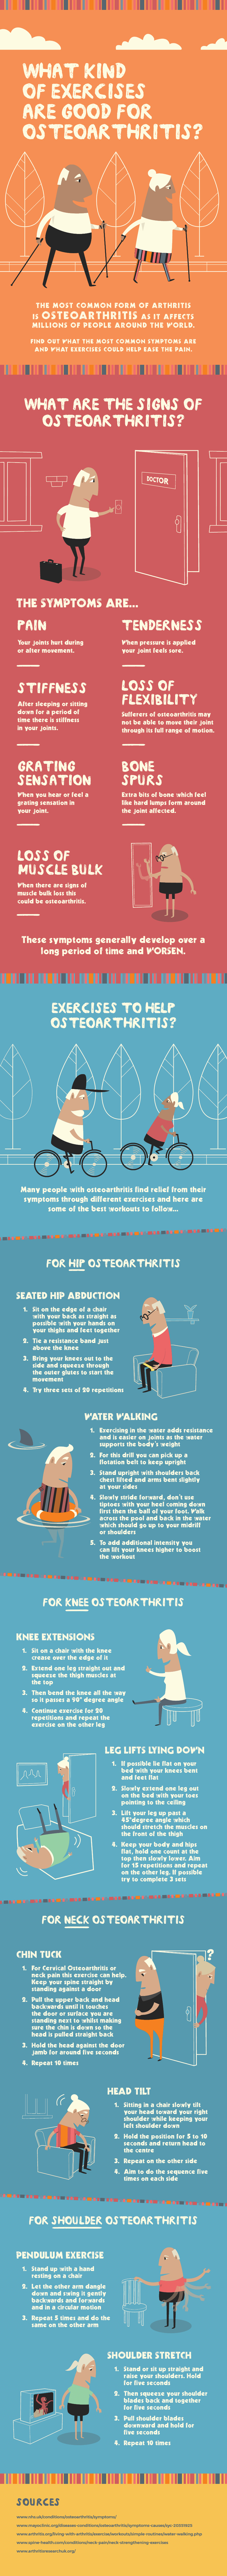 Exercises to try to help with Osteoarthritis